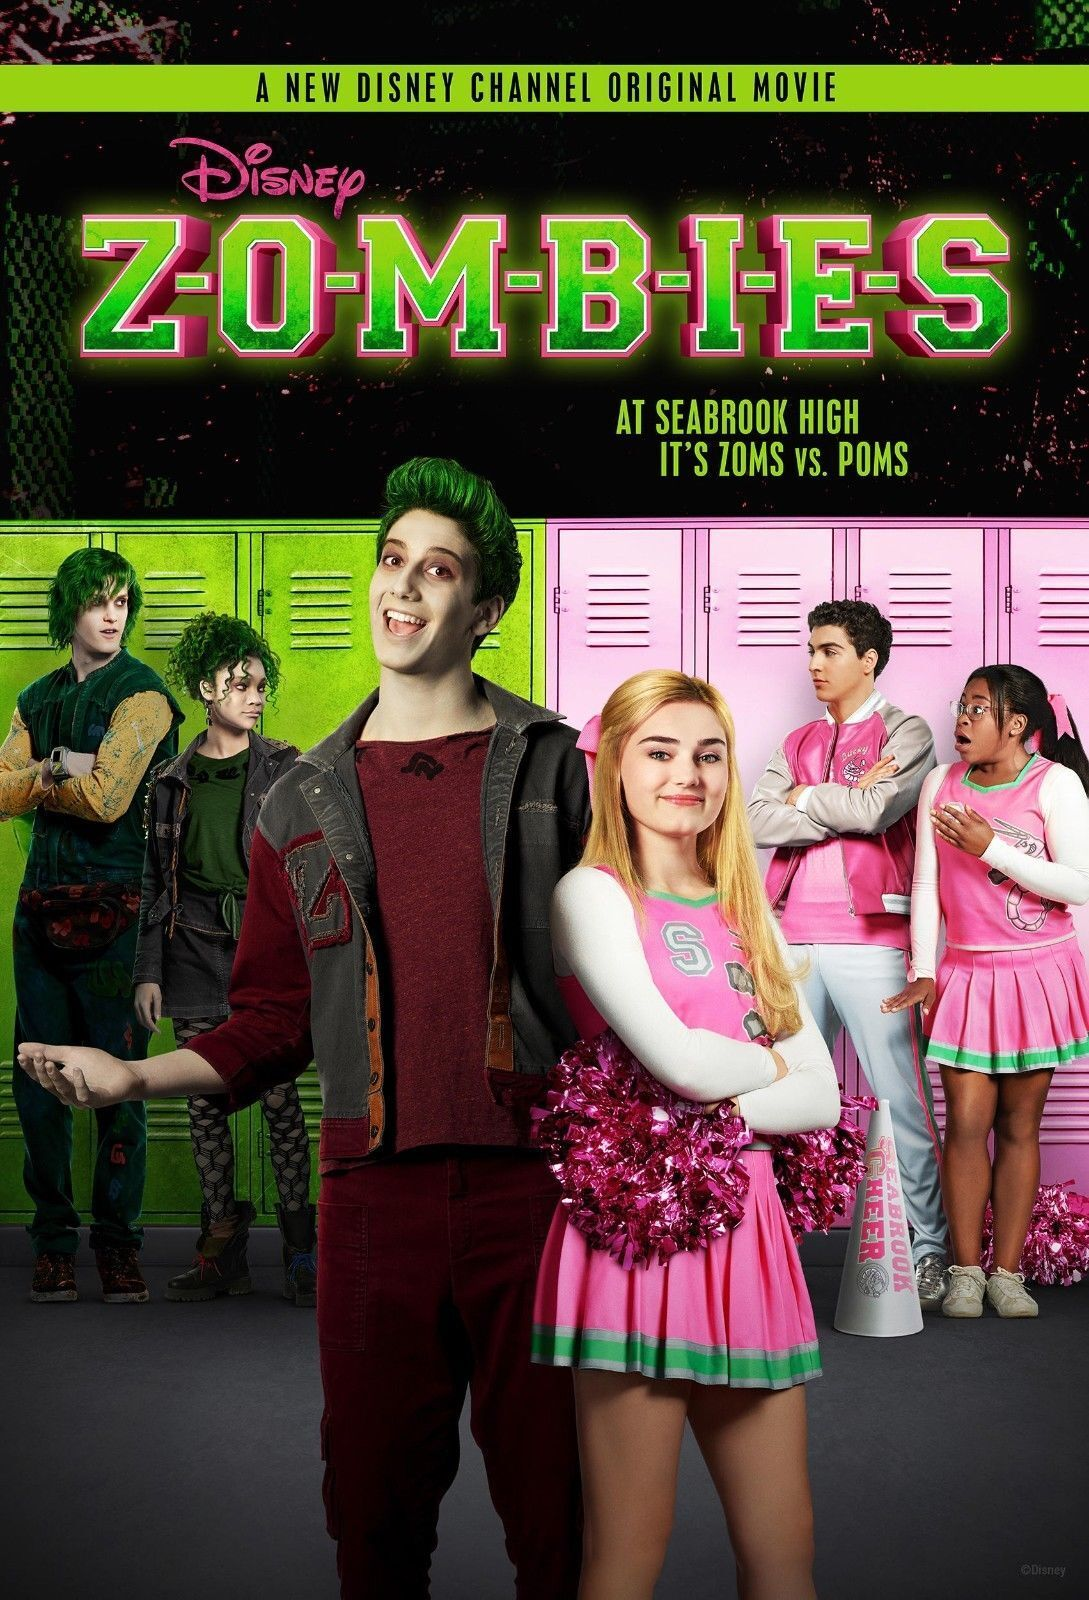 New Zombies Disney Channel TV Musical Hot Poster 24x36 30x45